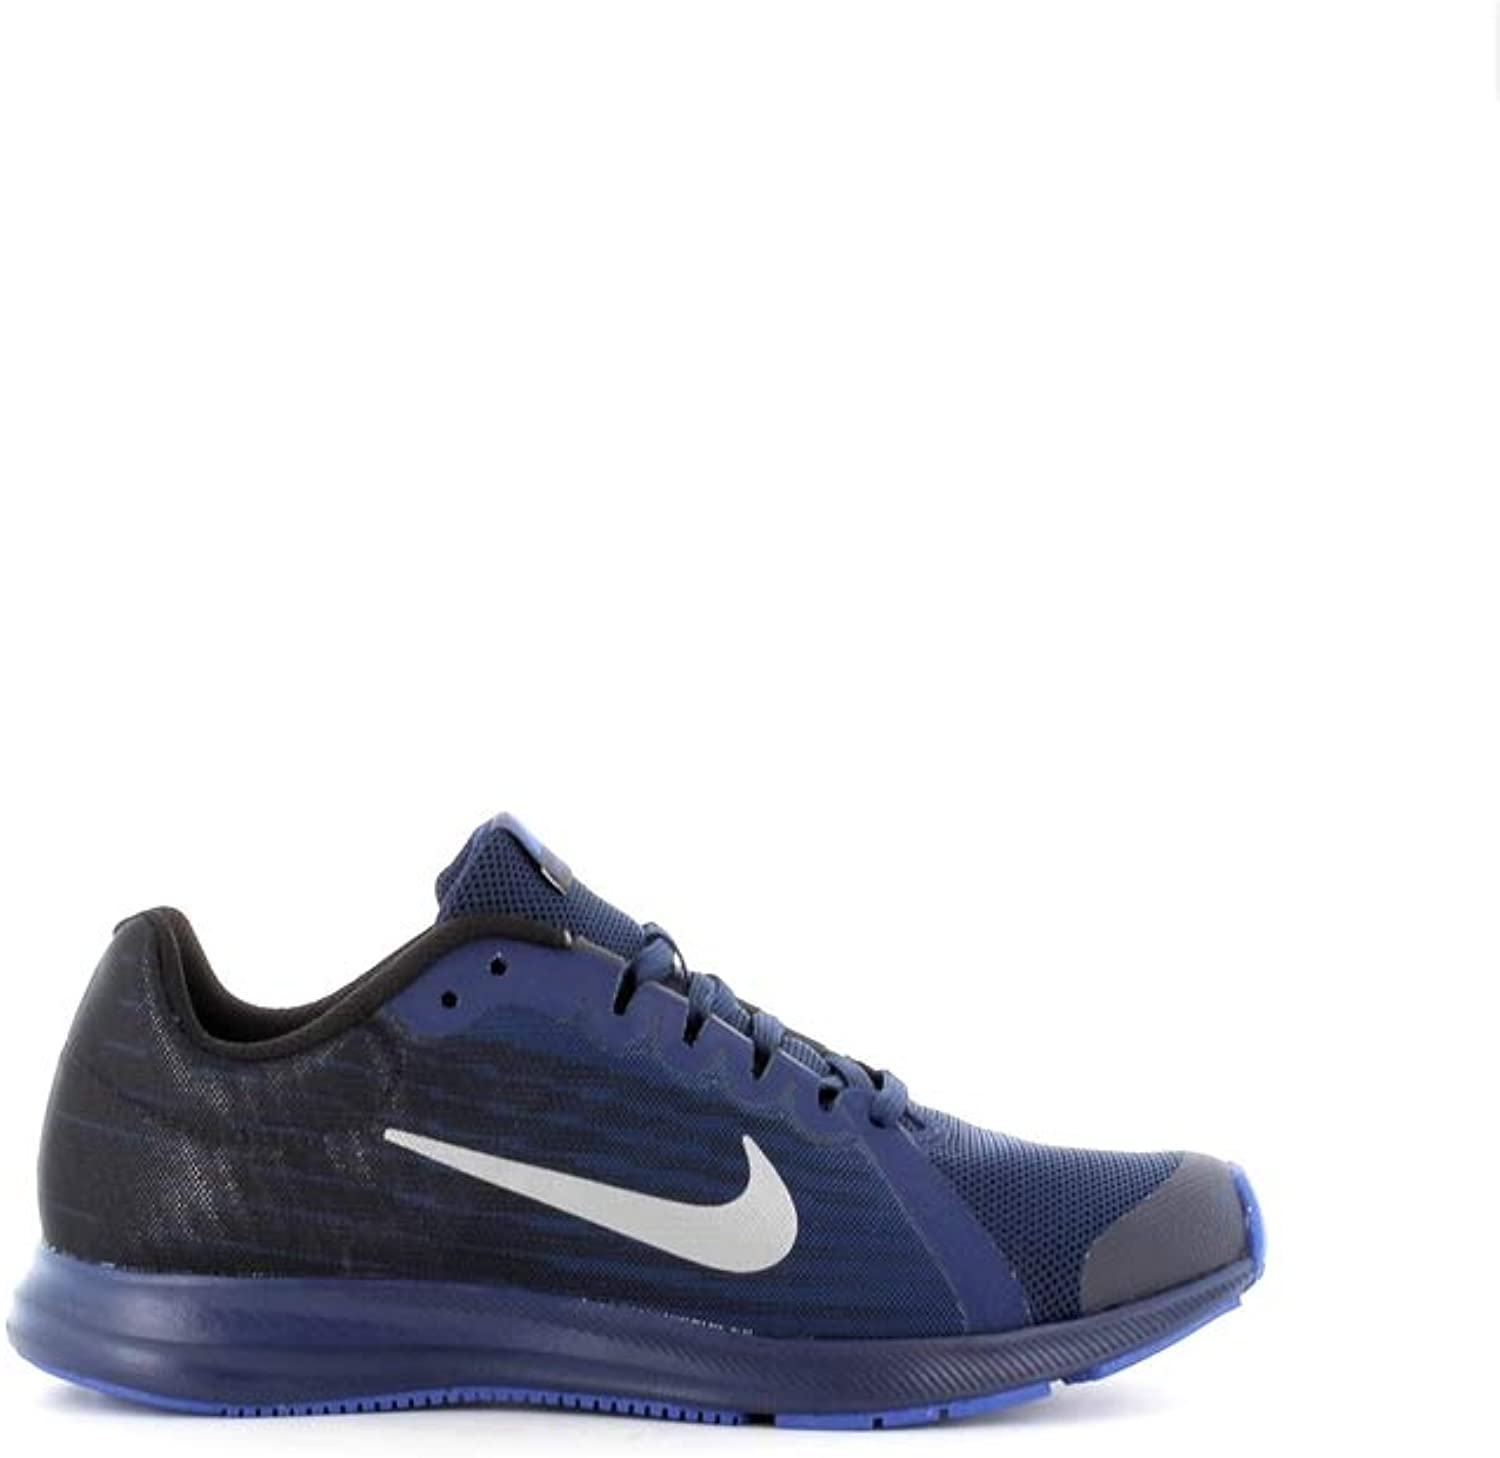 Nike Men's Downshifter 8 Rfl (gs) Fitness shoes, Multicolour (bluee Void Reflect Silver Black 400), 5.5 UK